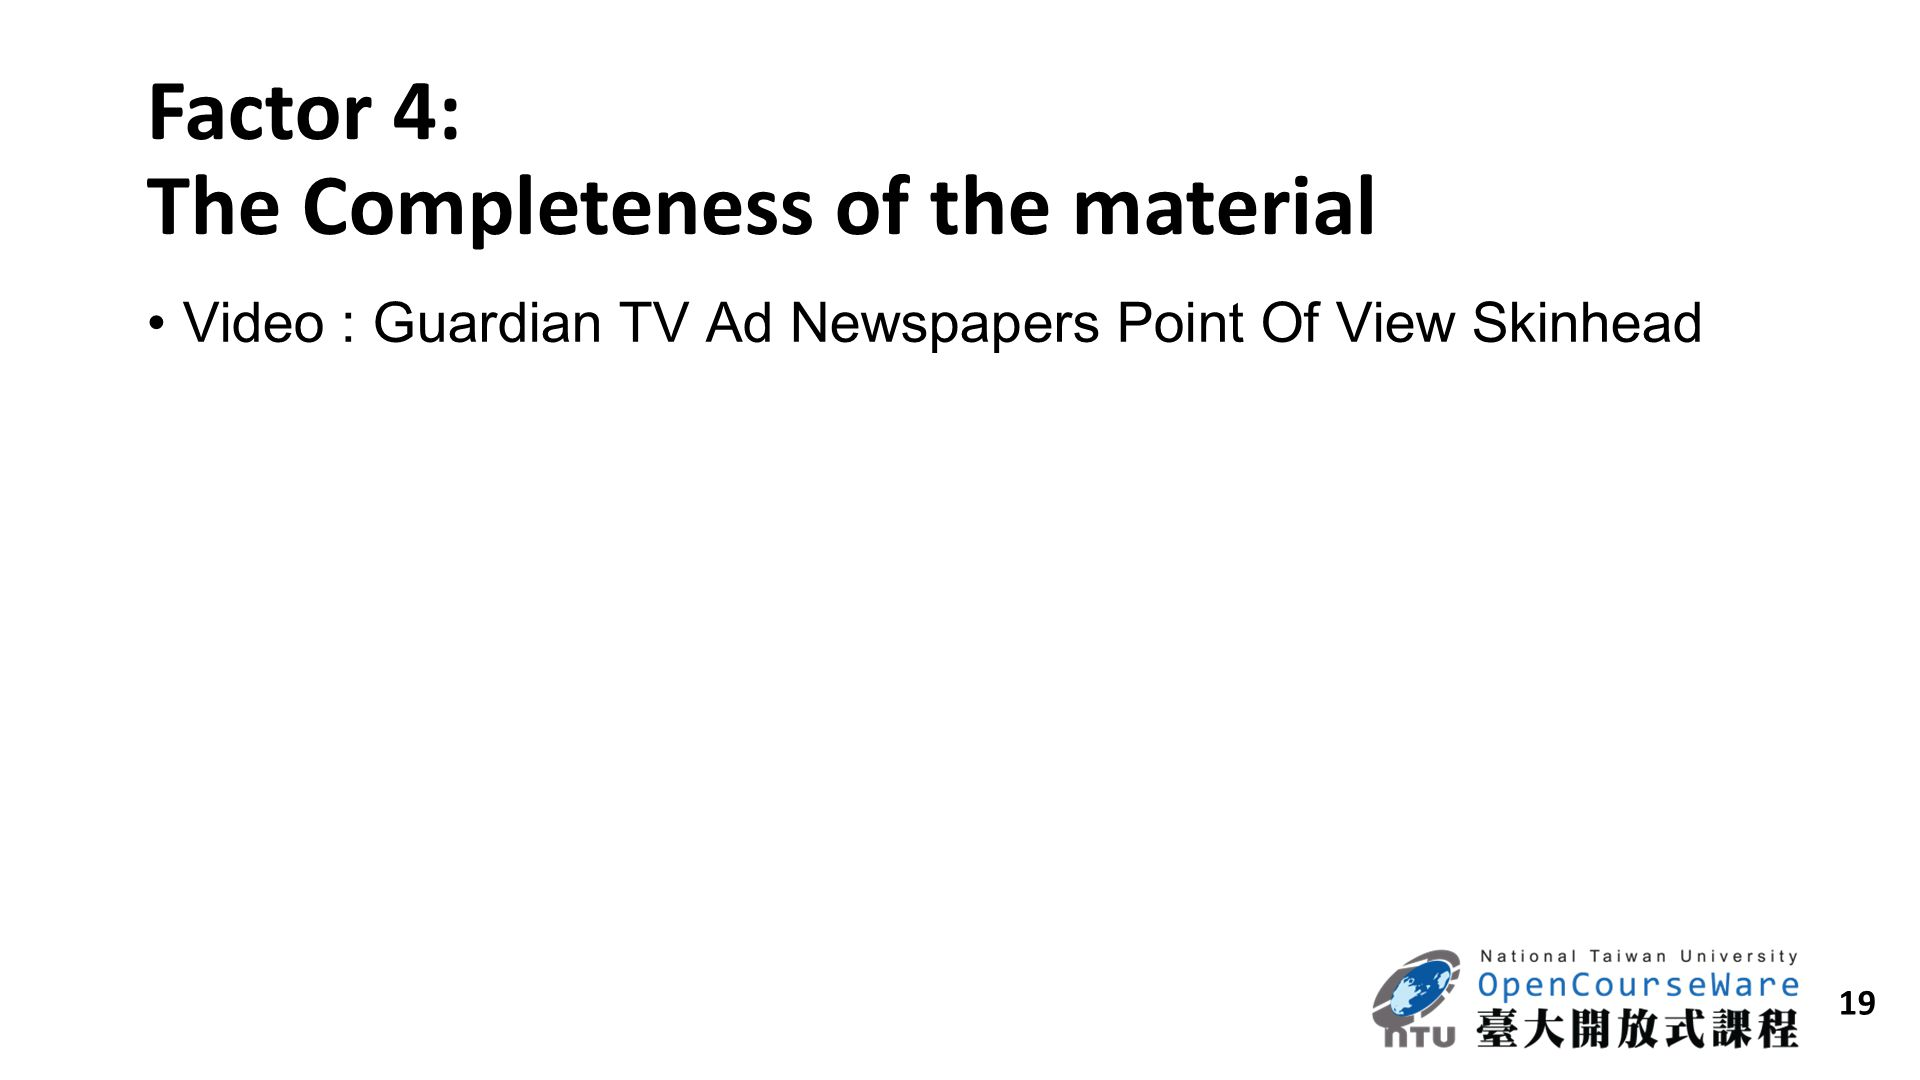 Factor 4: The Completeness of the material